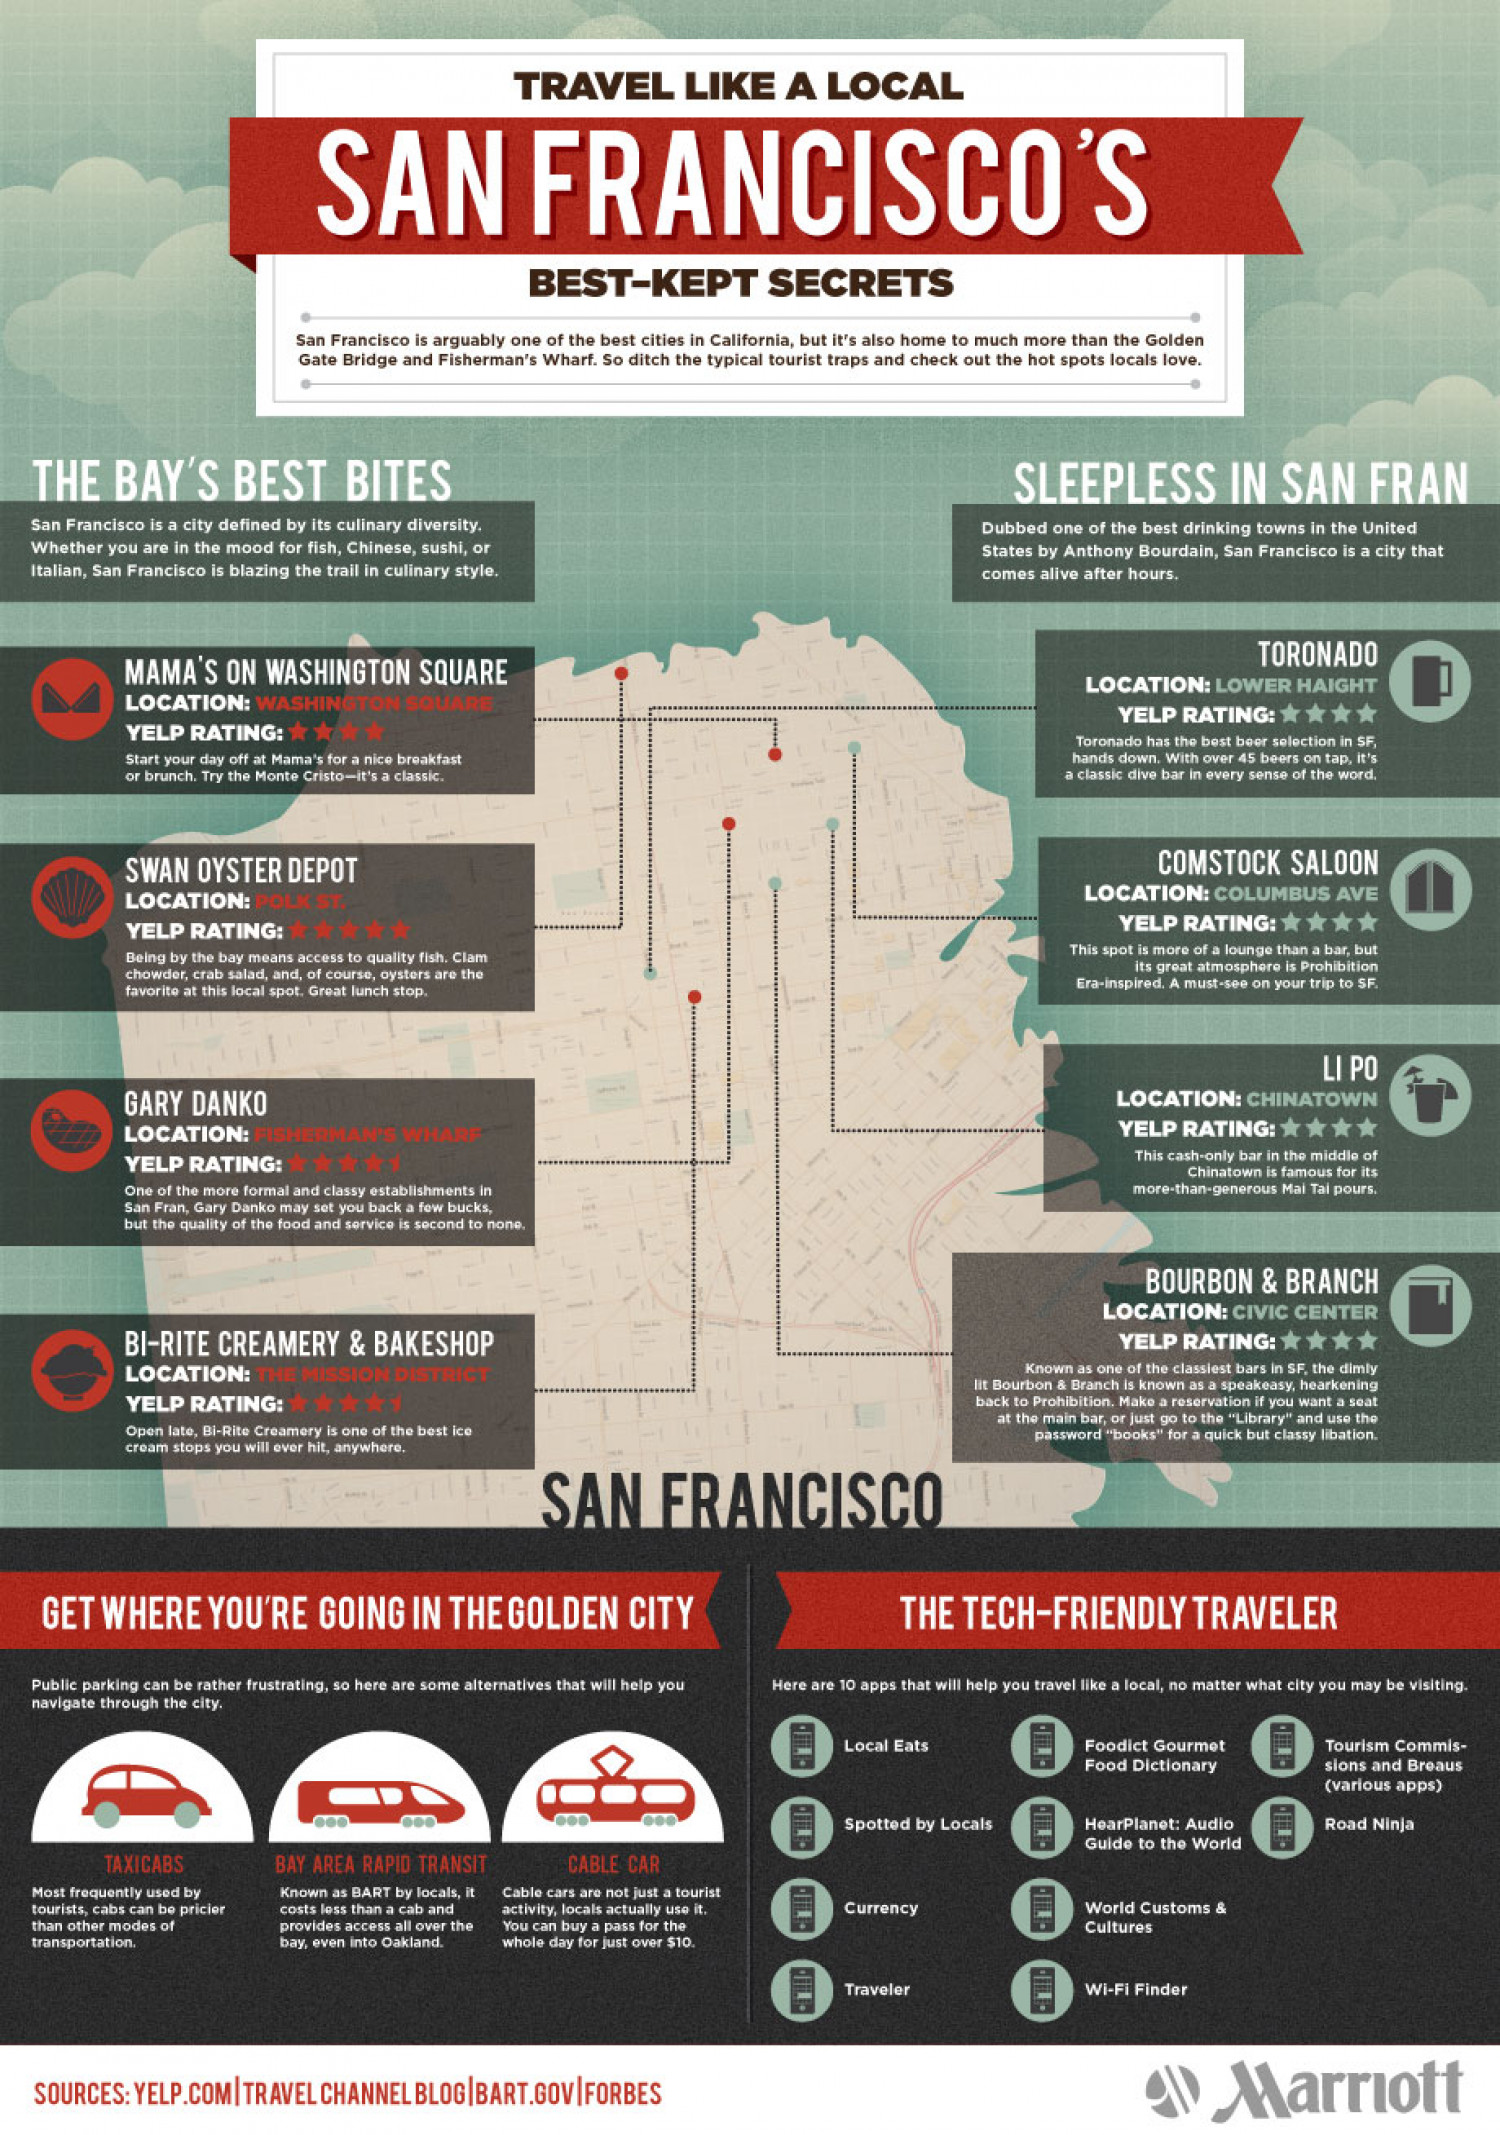 Travel Like a Local: San Francisco's Best Kept Secrets Infographic